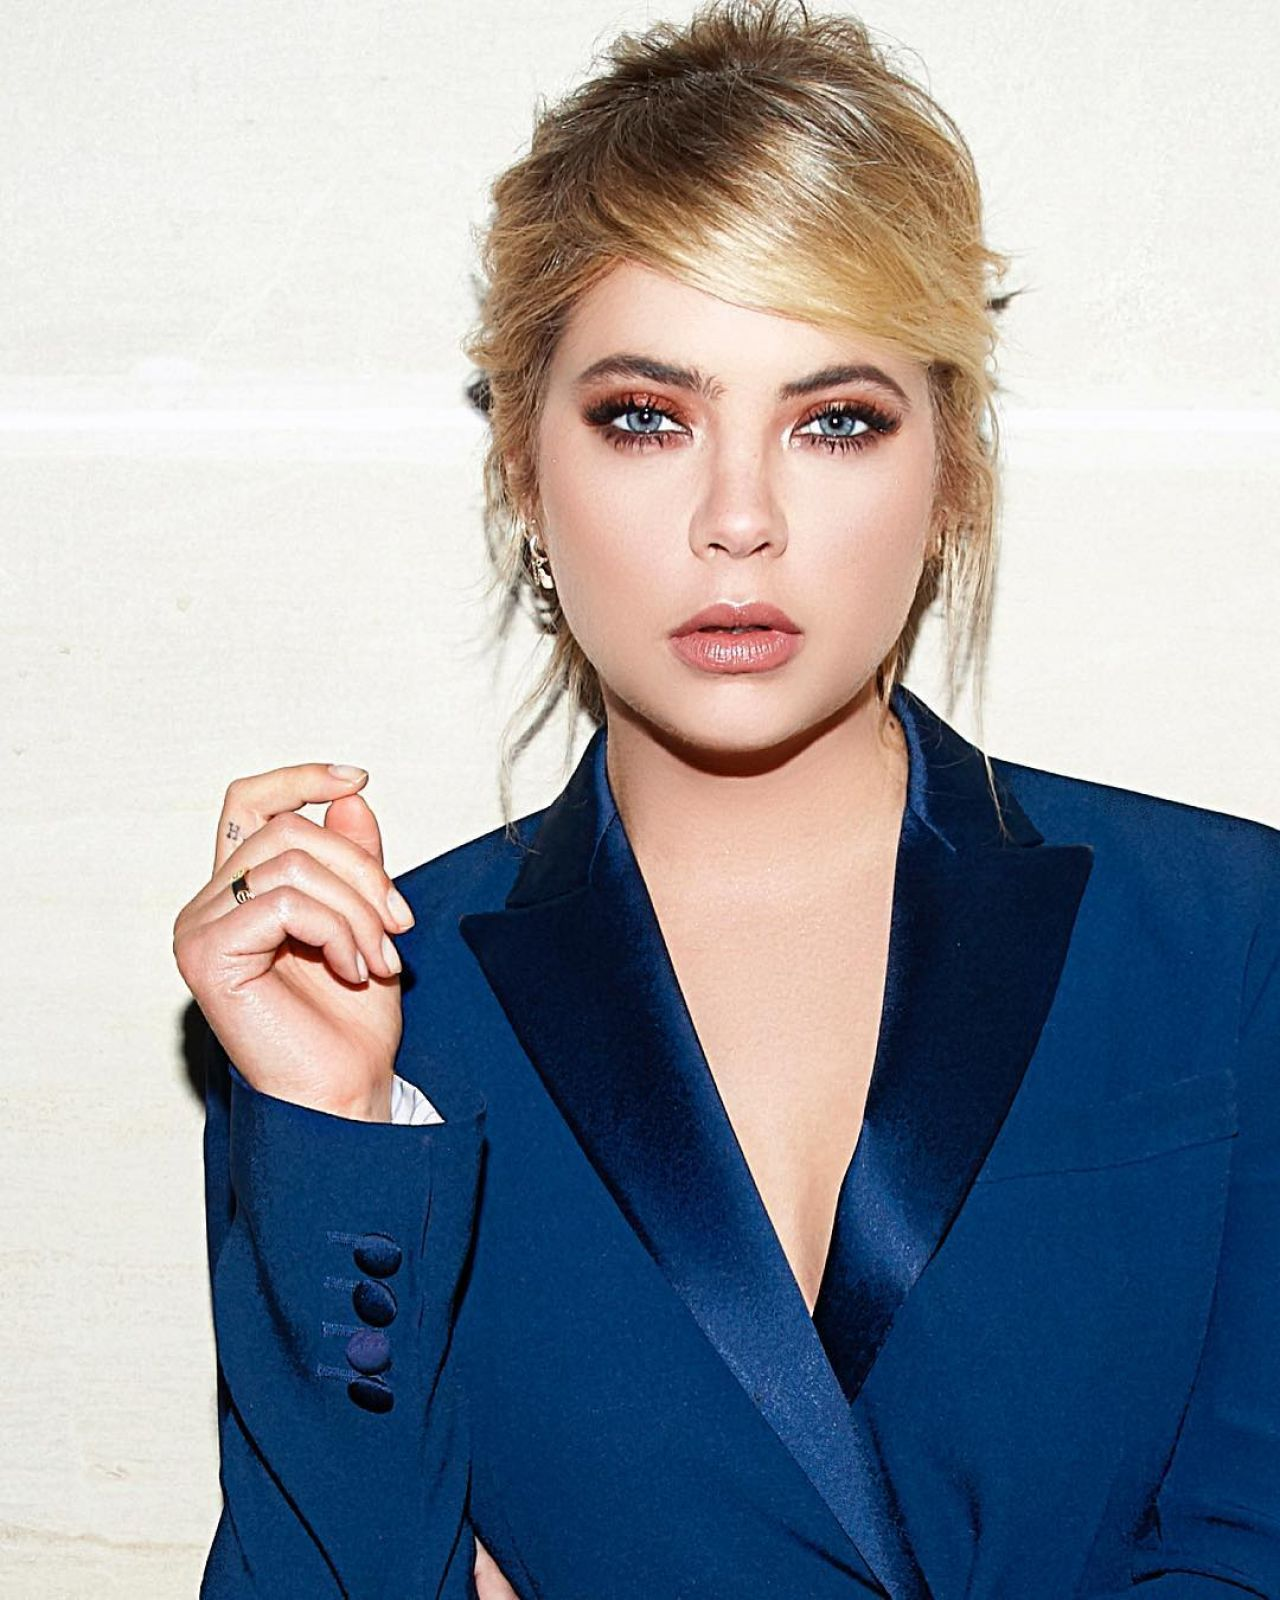 Ashley Benson photo #868625